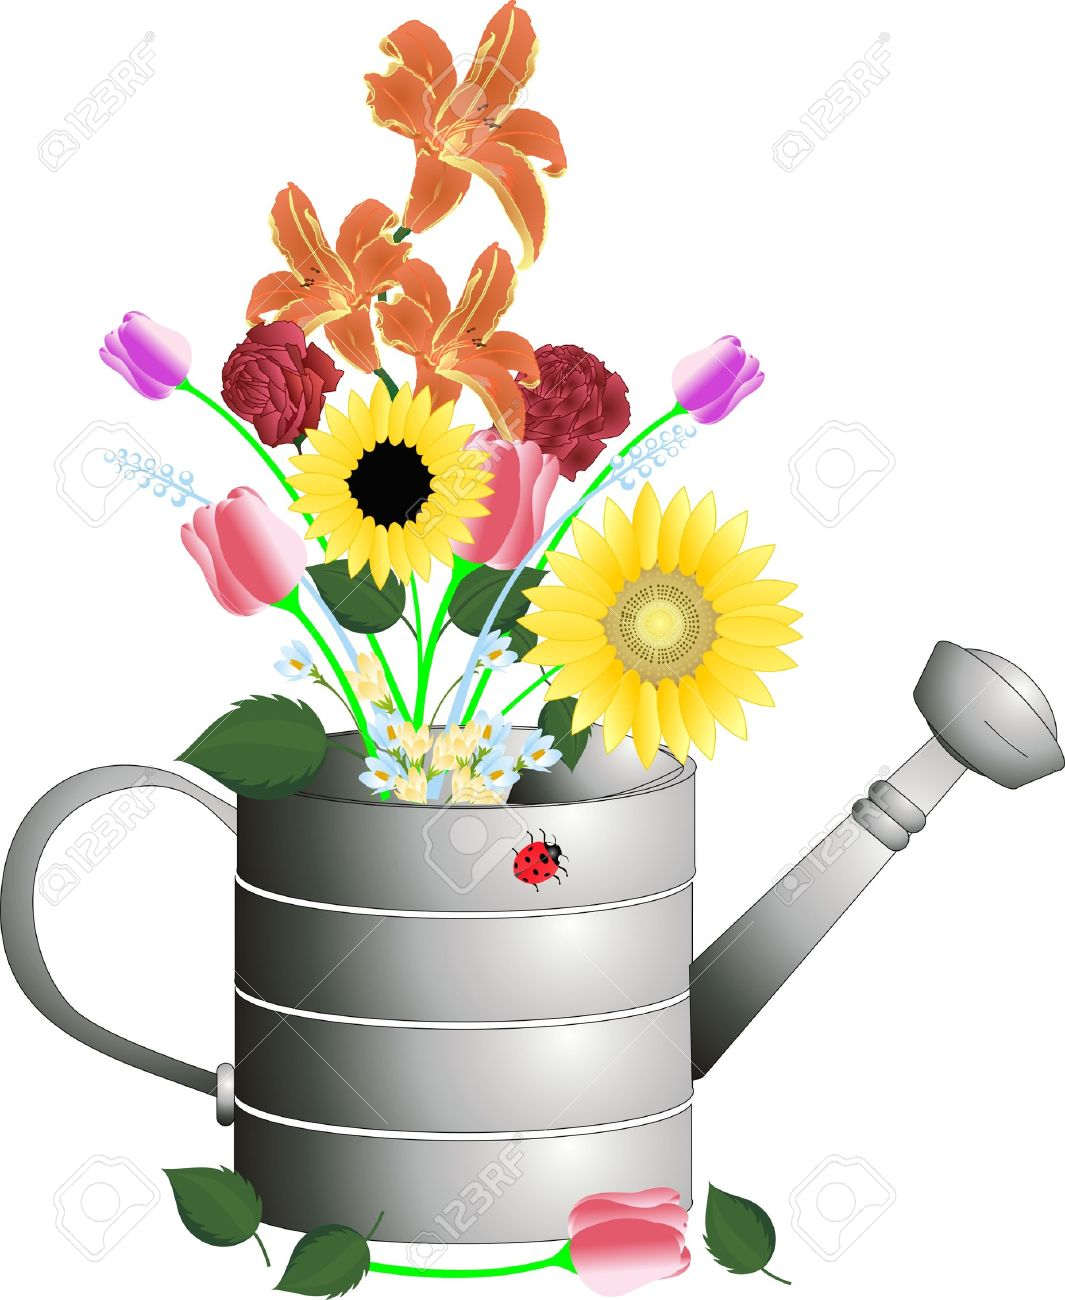 Watering Can with cut flowers in an arrangement illustration.. Stock Vector - 5263069